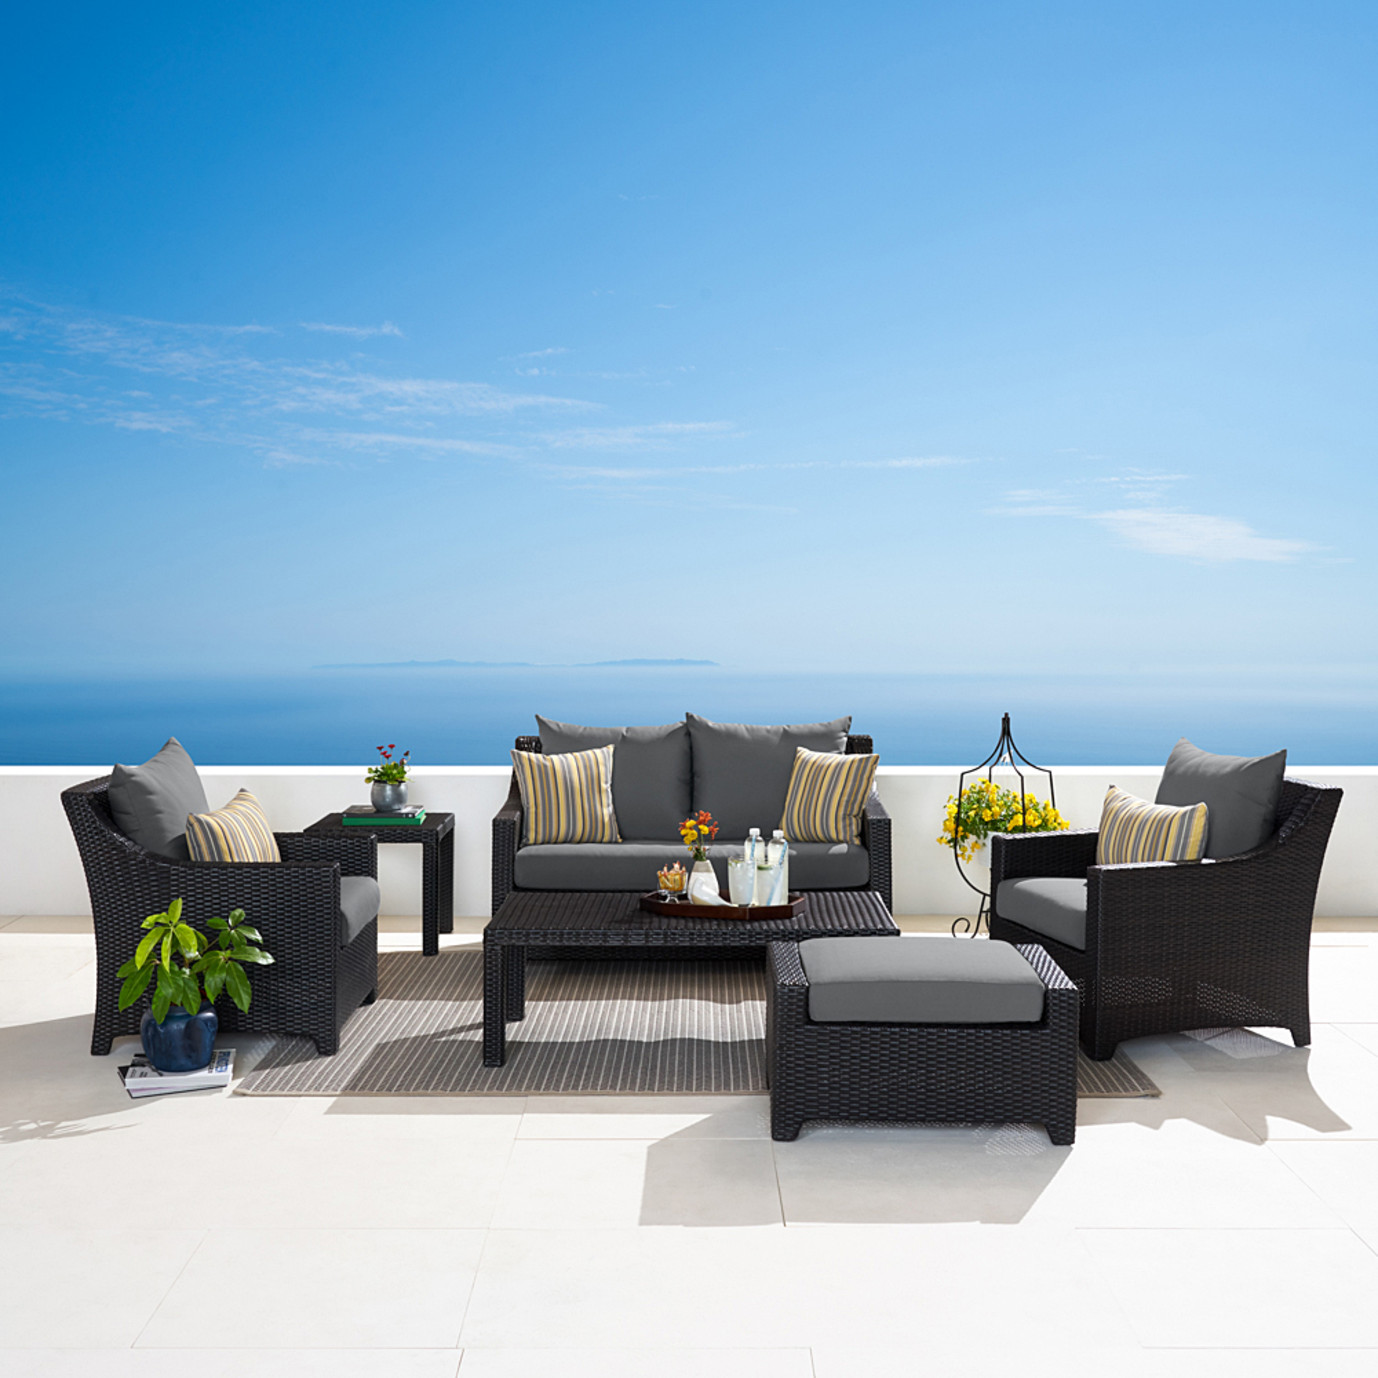 Deco™ 6pc Love and Club Seating Set - Charcoal Gray